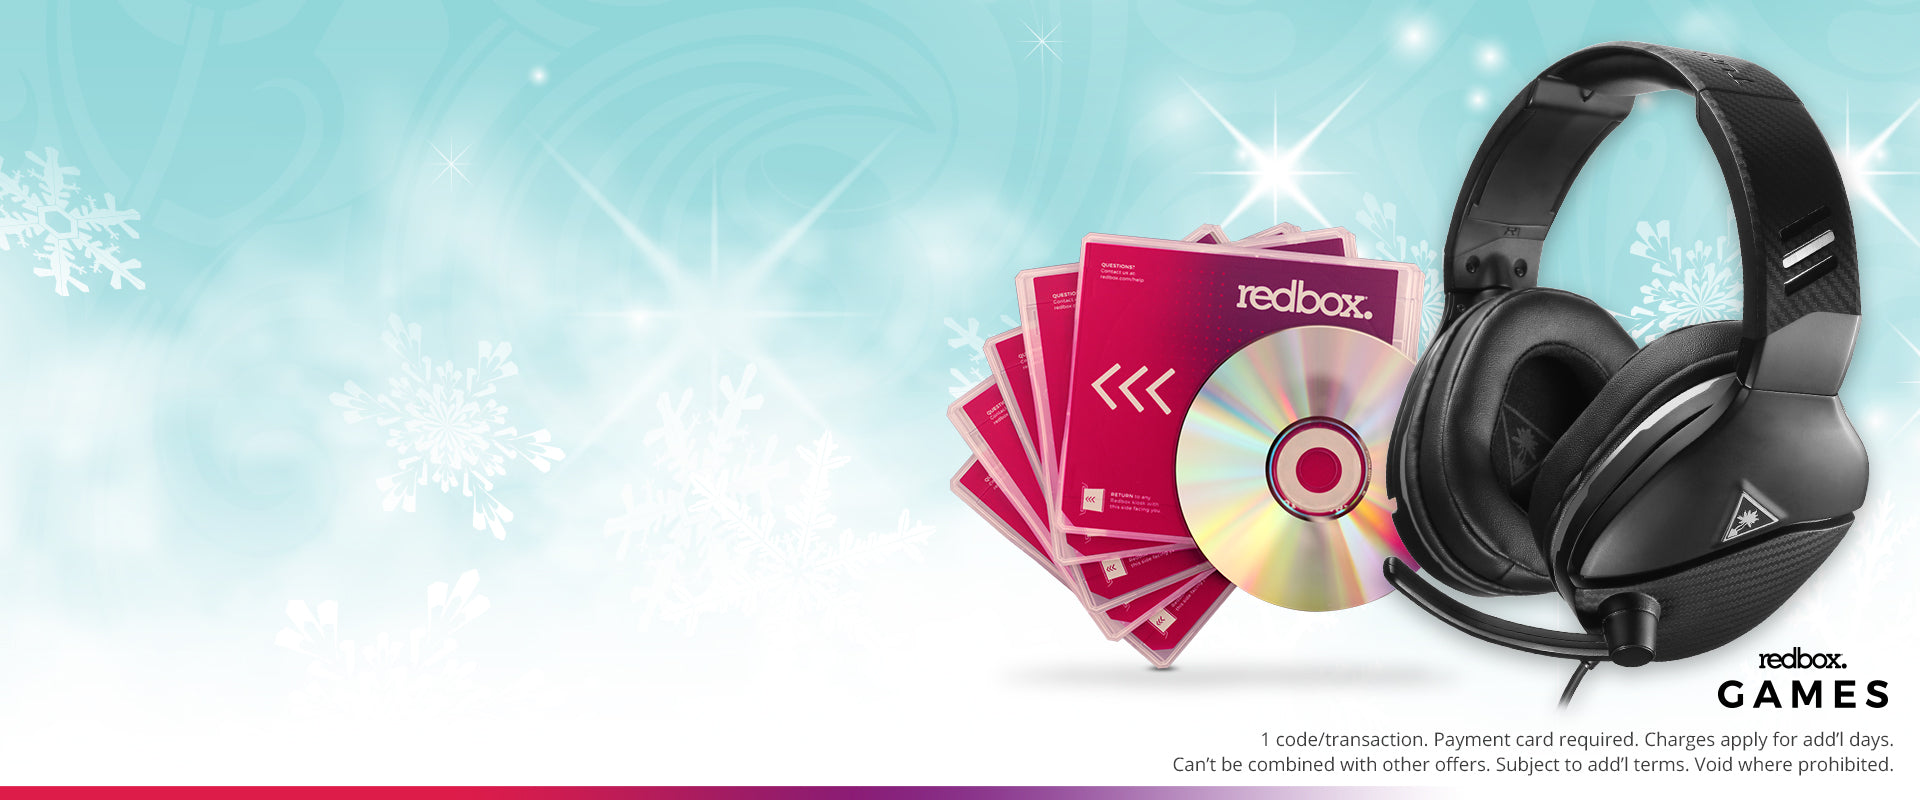 5 free 1-night redbox game rentals